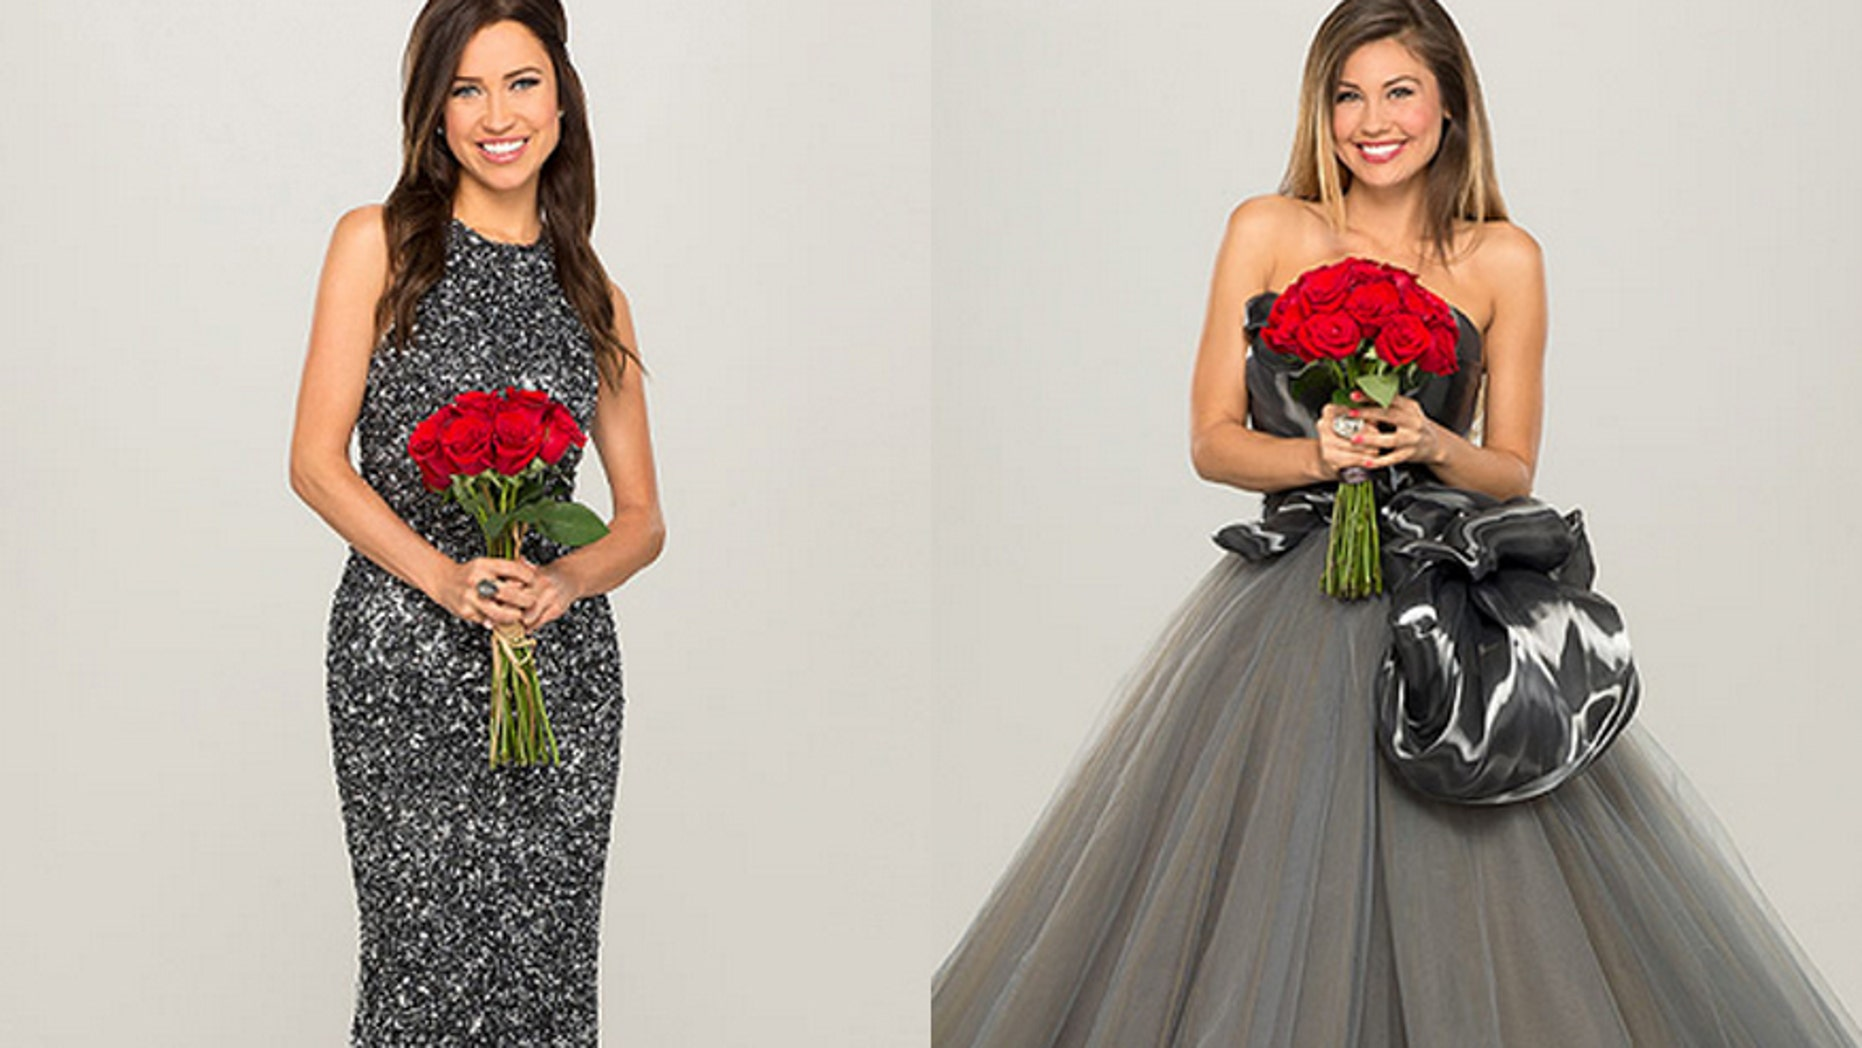 """Kaitlyn Bristowe and Britt Nilsson of ABC's """"The Bachelorette."""""""